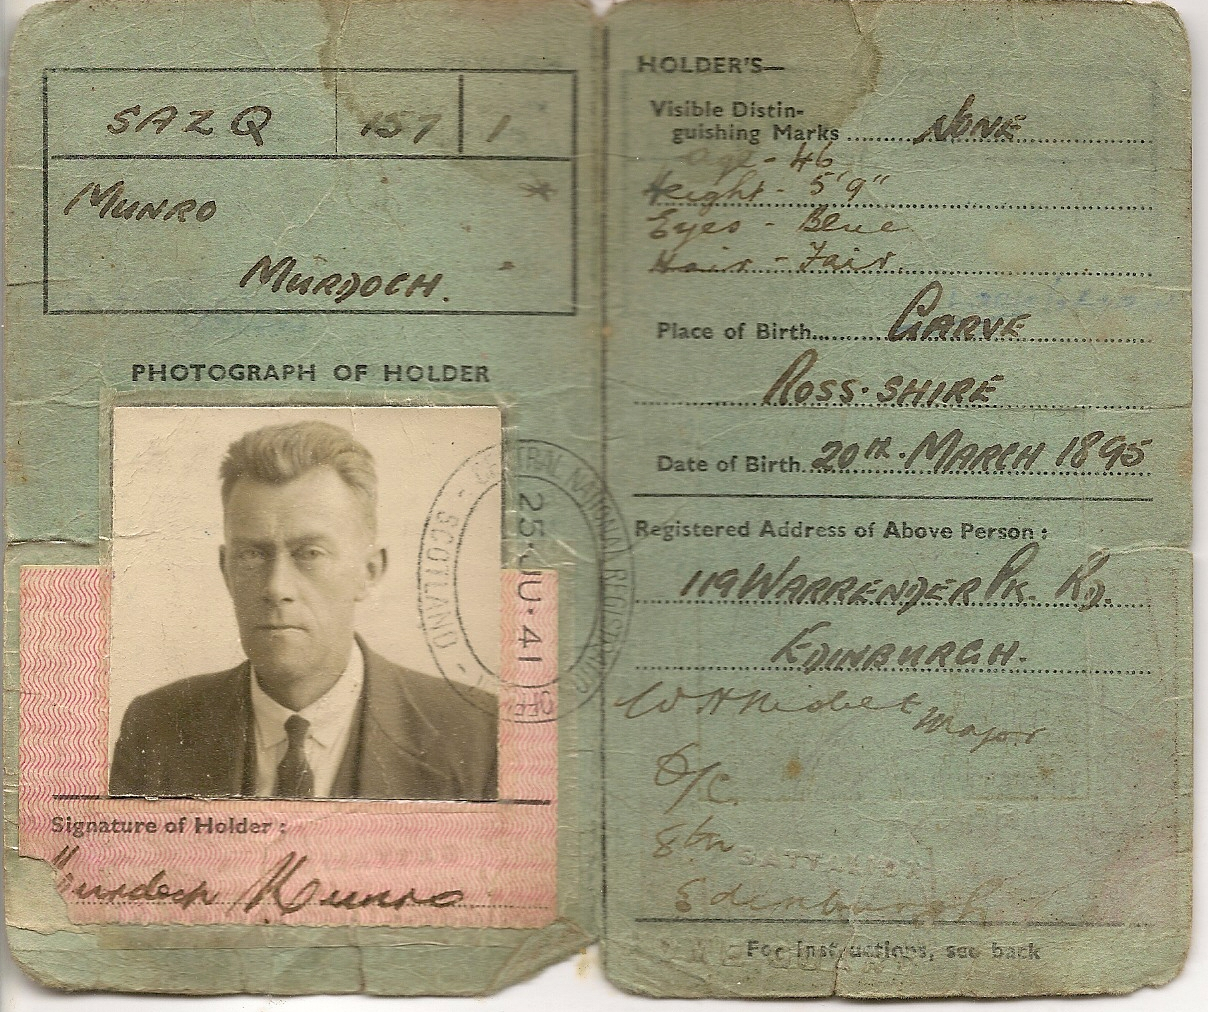 image of identity card inside pages